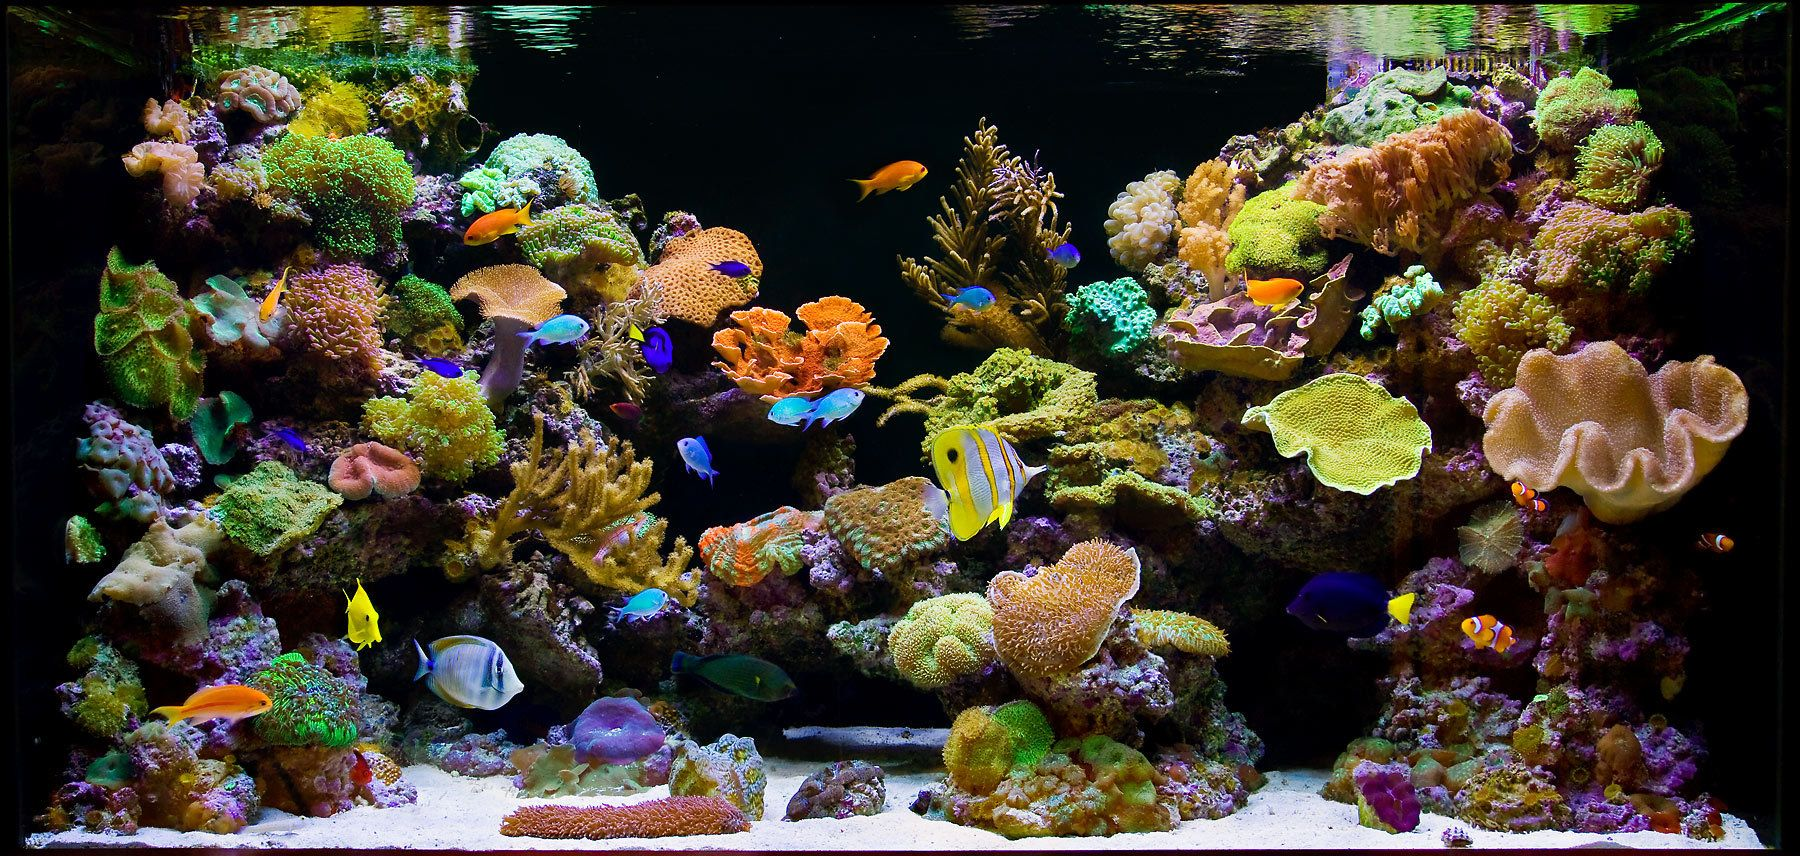 A Splendid Reef Aquarium Scene